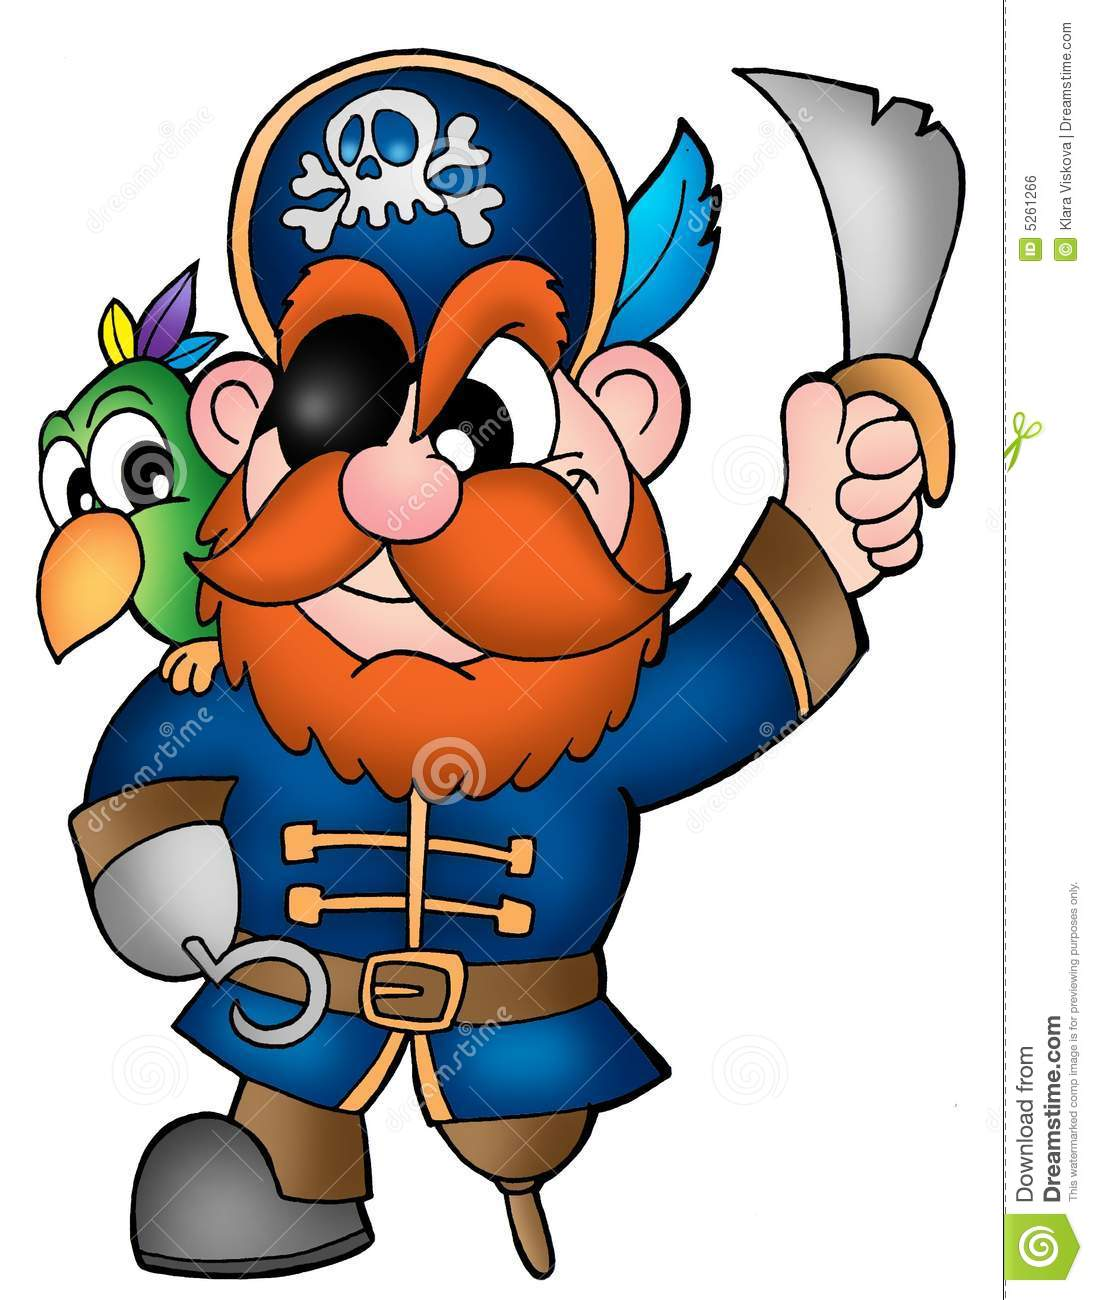 Pirate With Parrot Royalty Free Stock Image - Image: 5261266